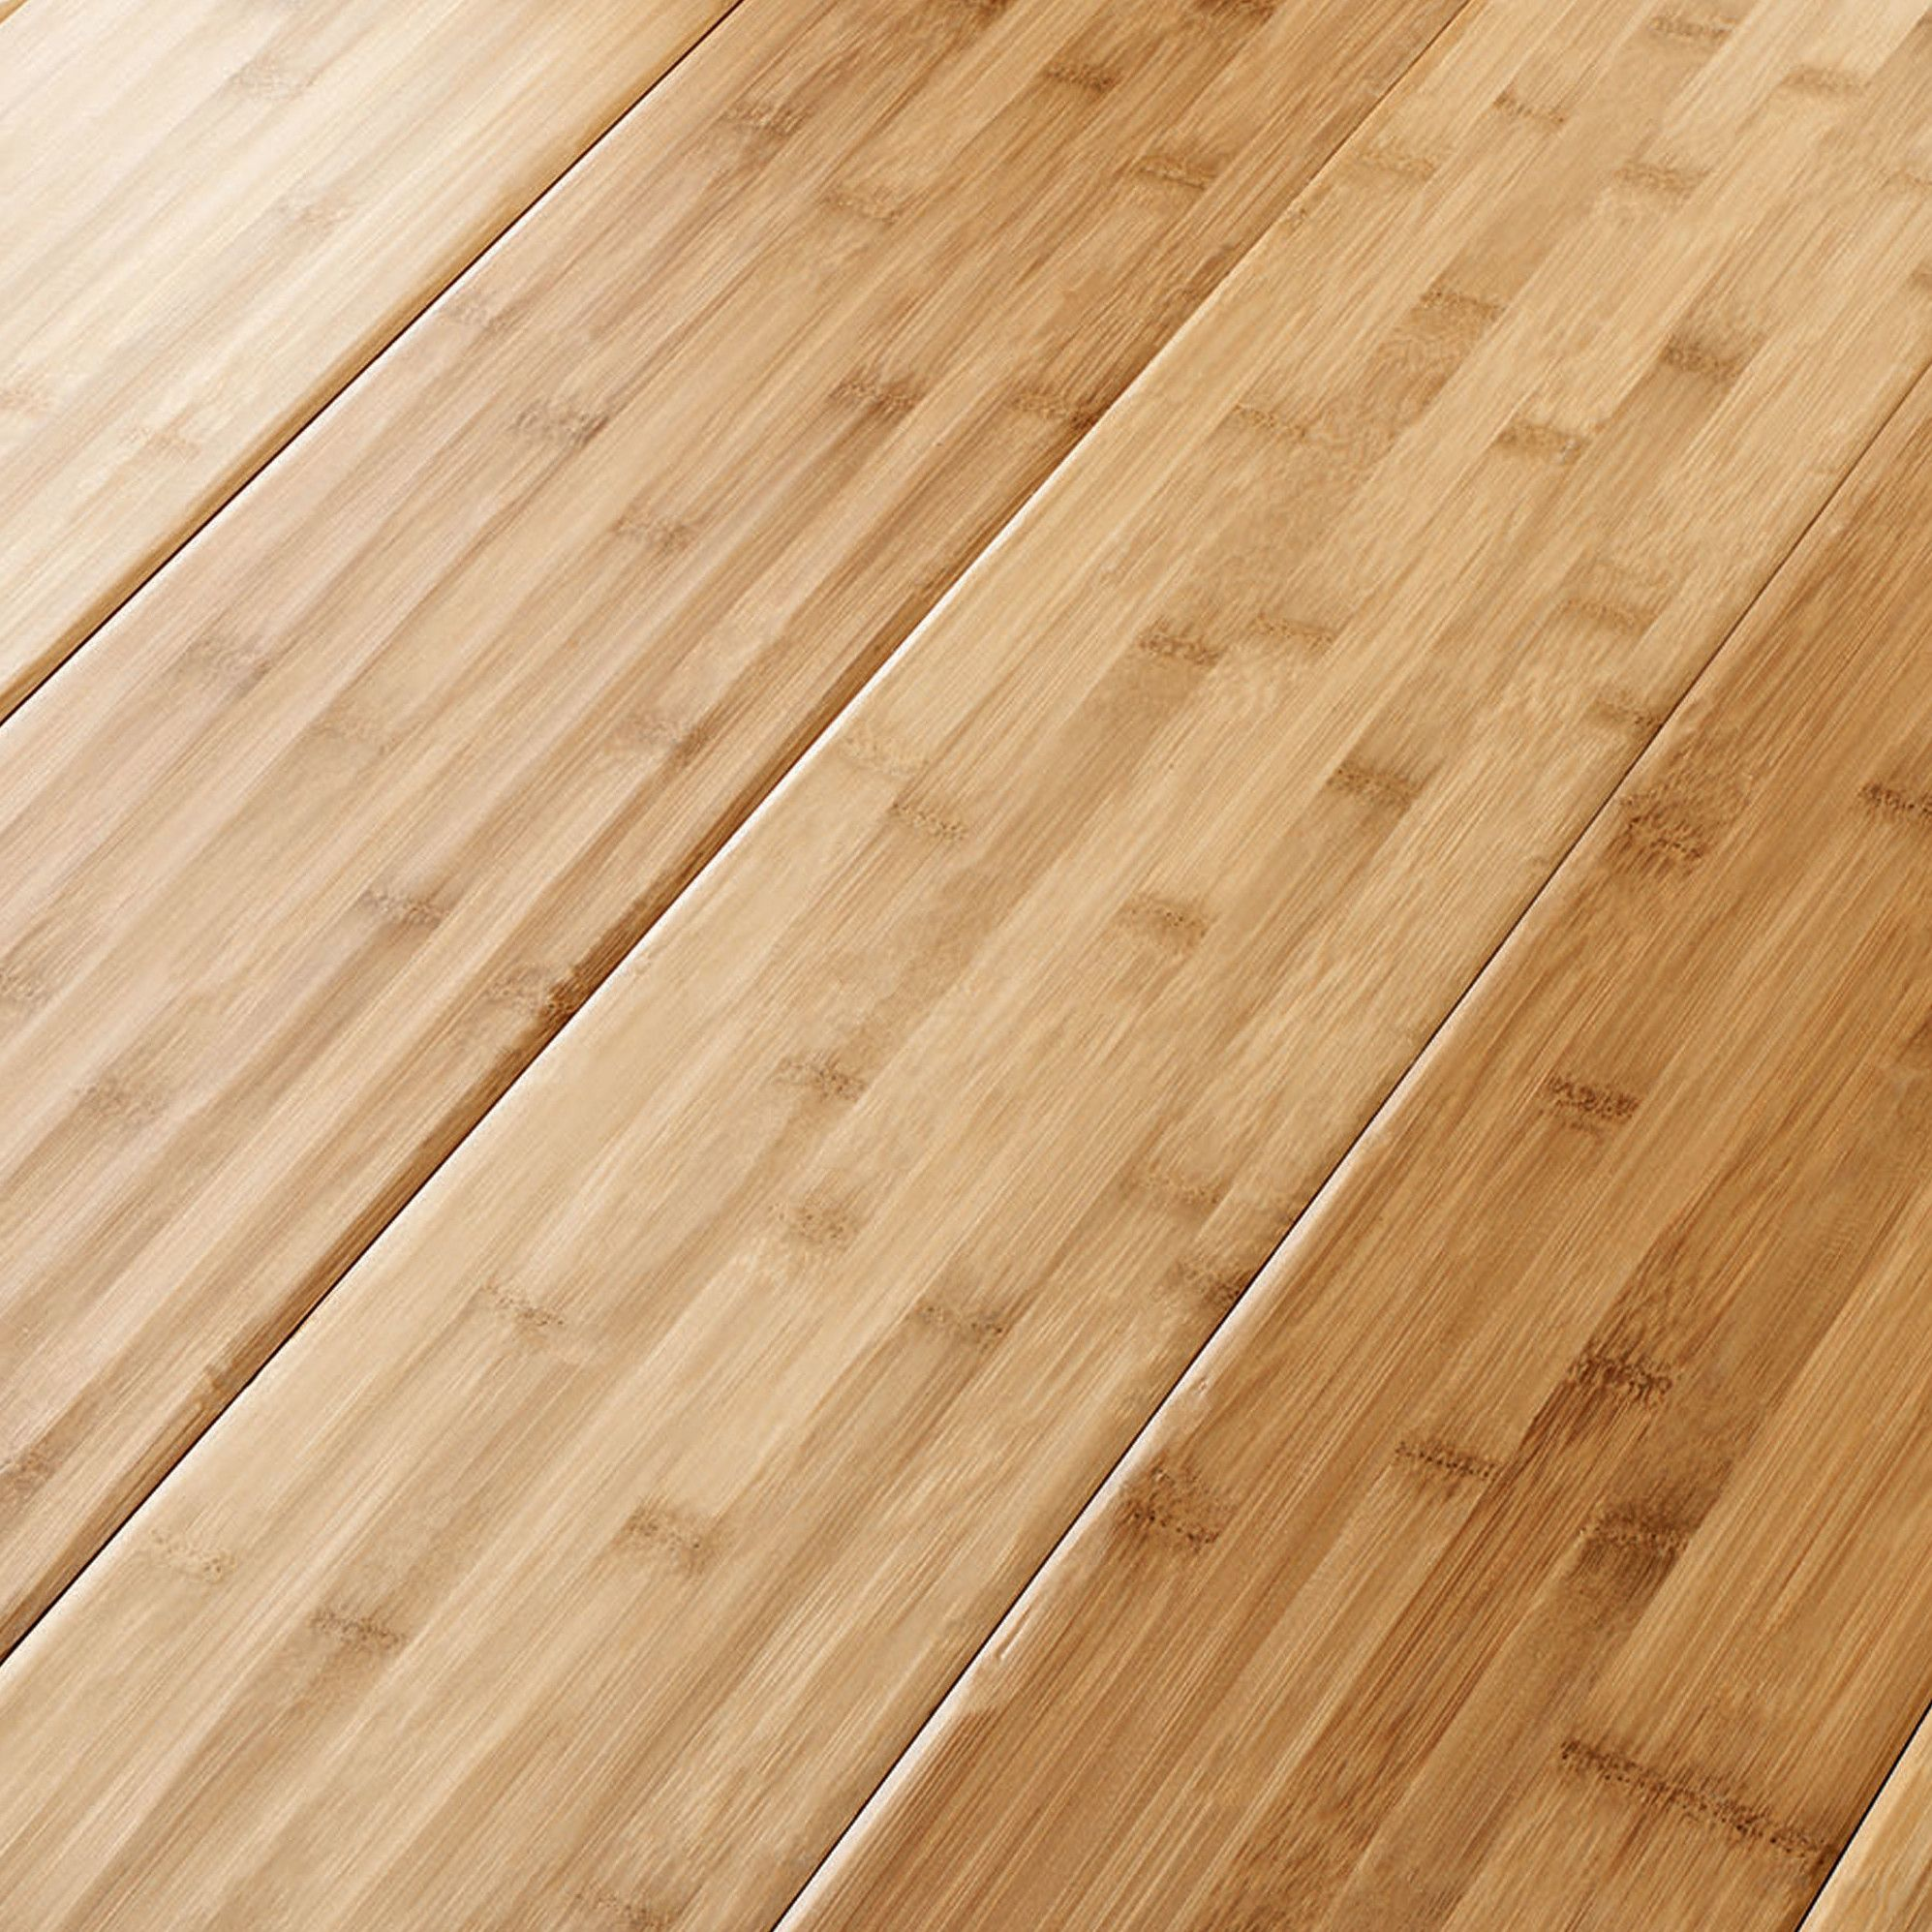 Our Green Natural Carbonized Bamboo Floors Bamboo Hardwood Flooring Flooring Hardwood